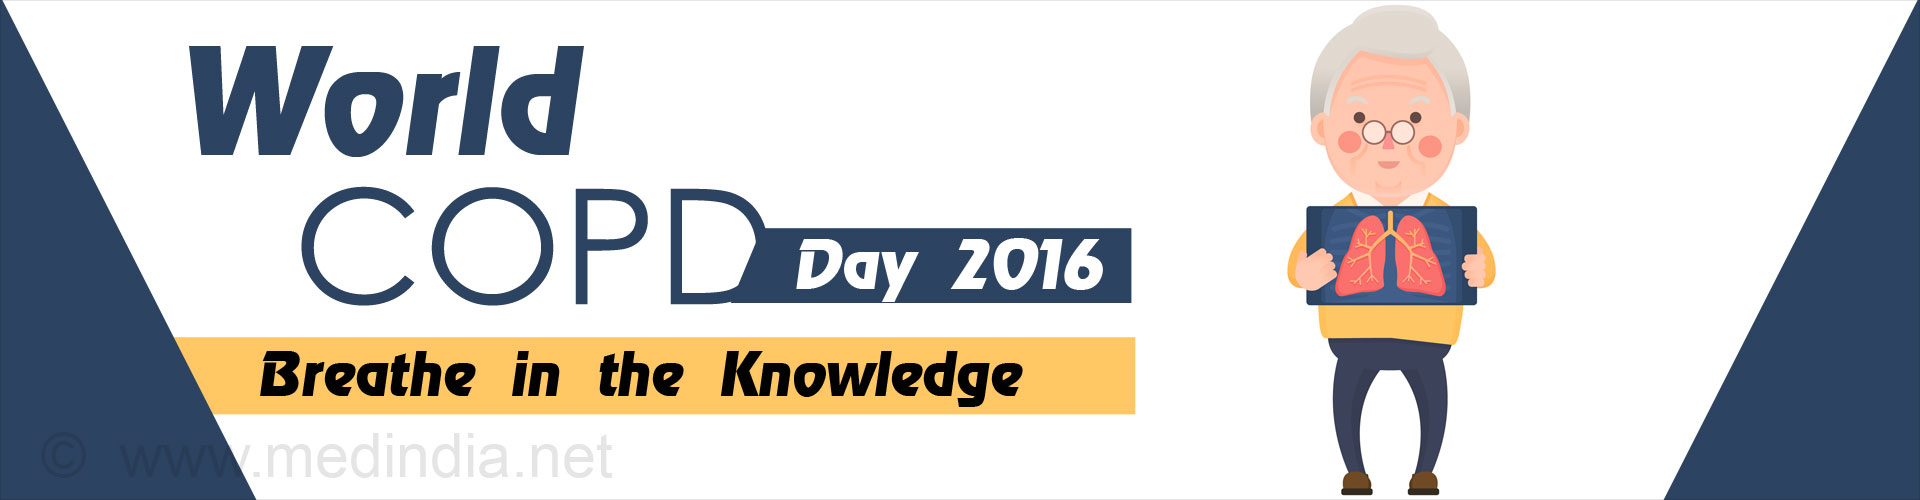 World COPD Day 2016: Breathe in the Knowledge